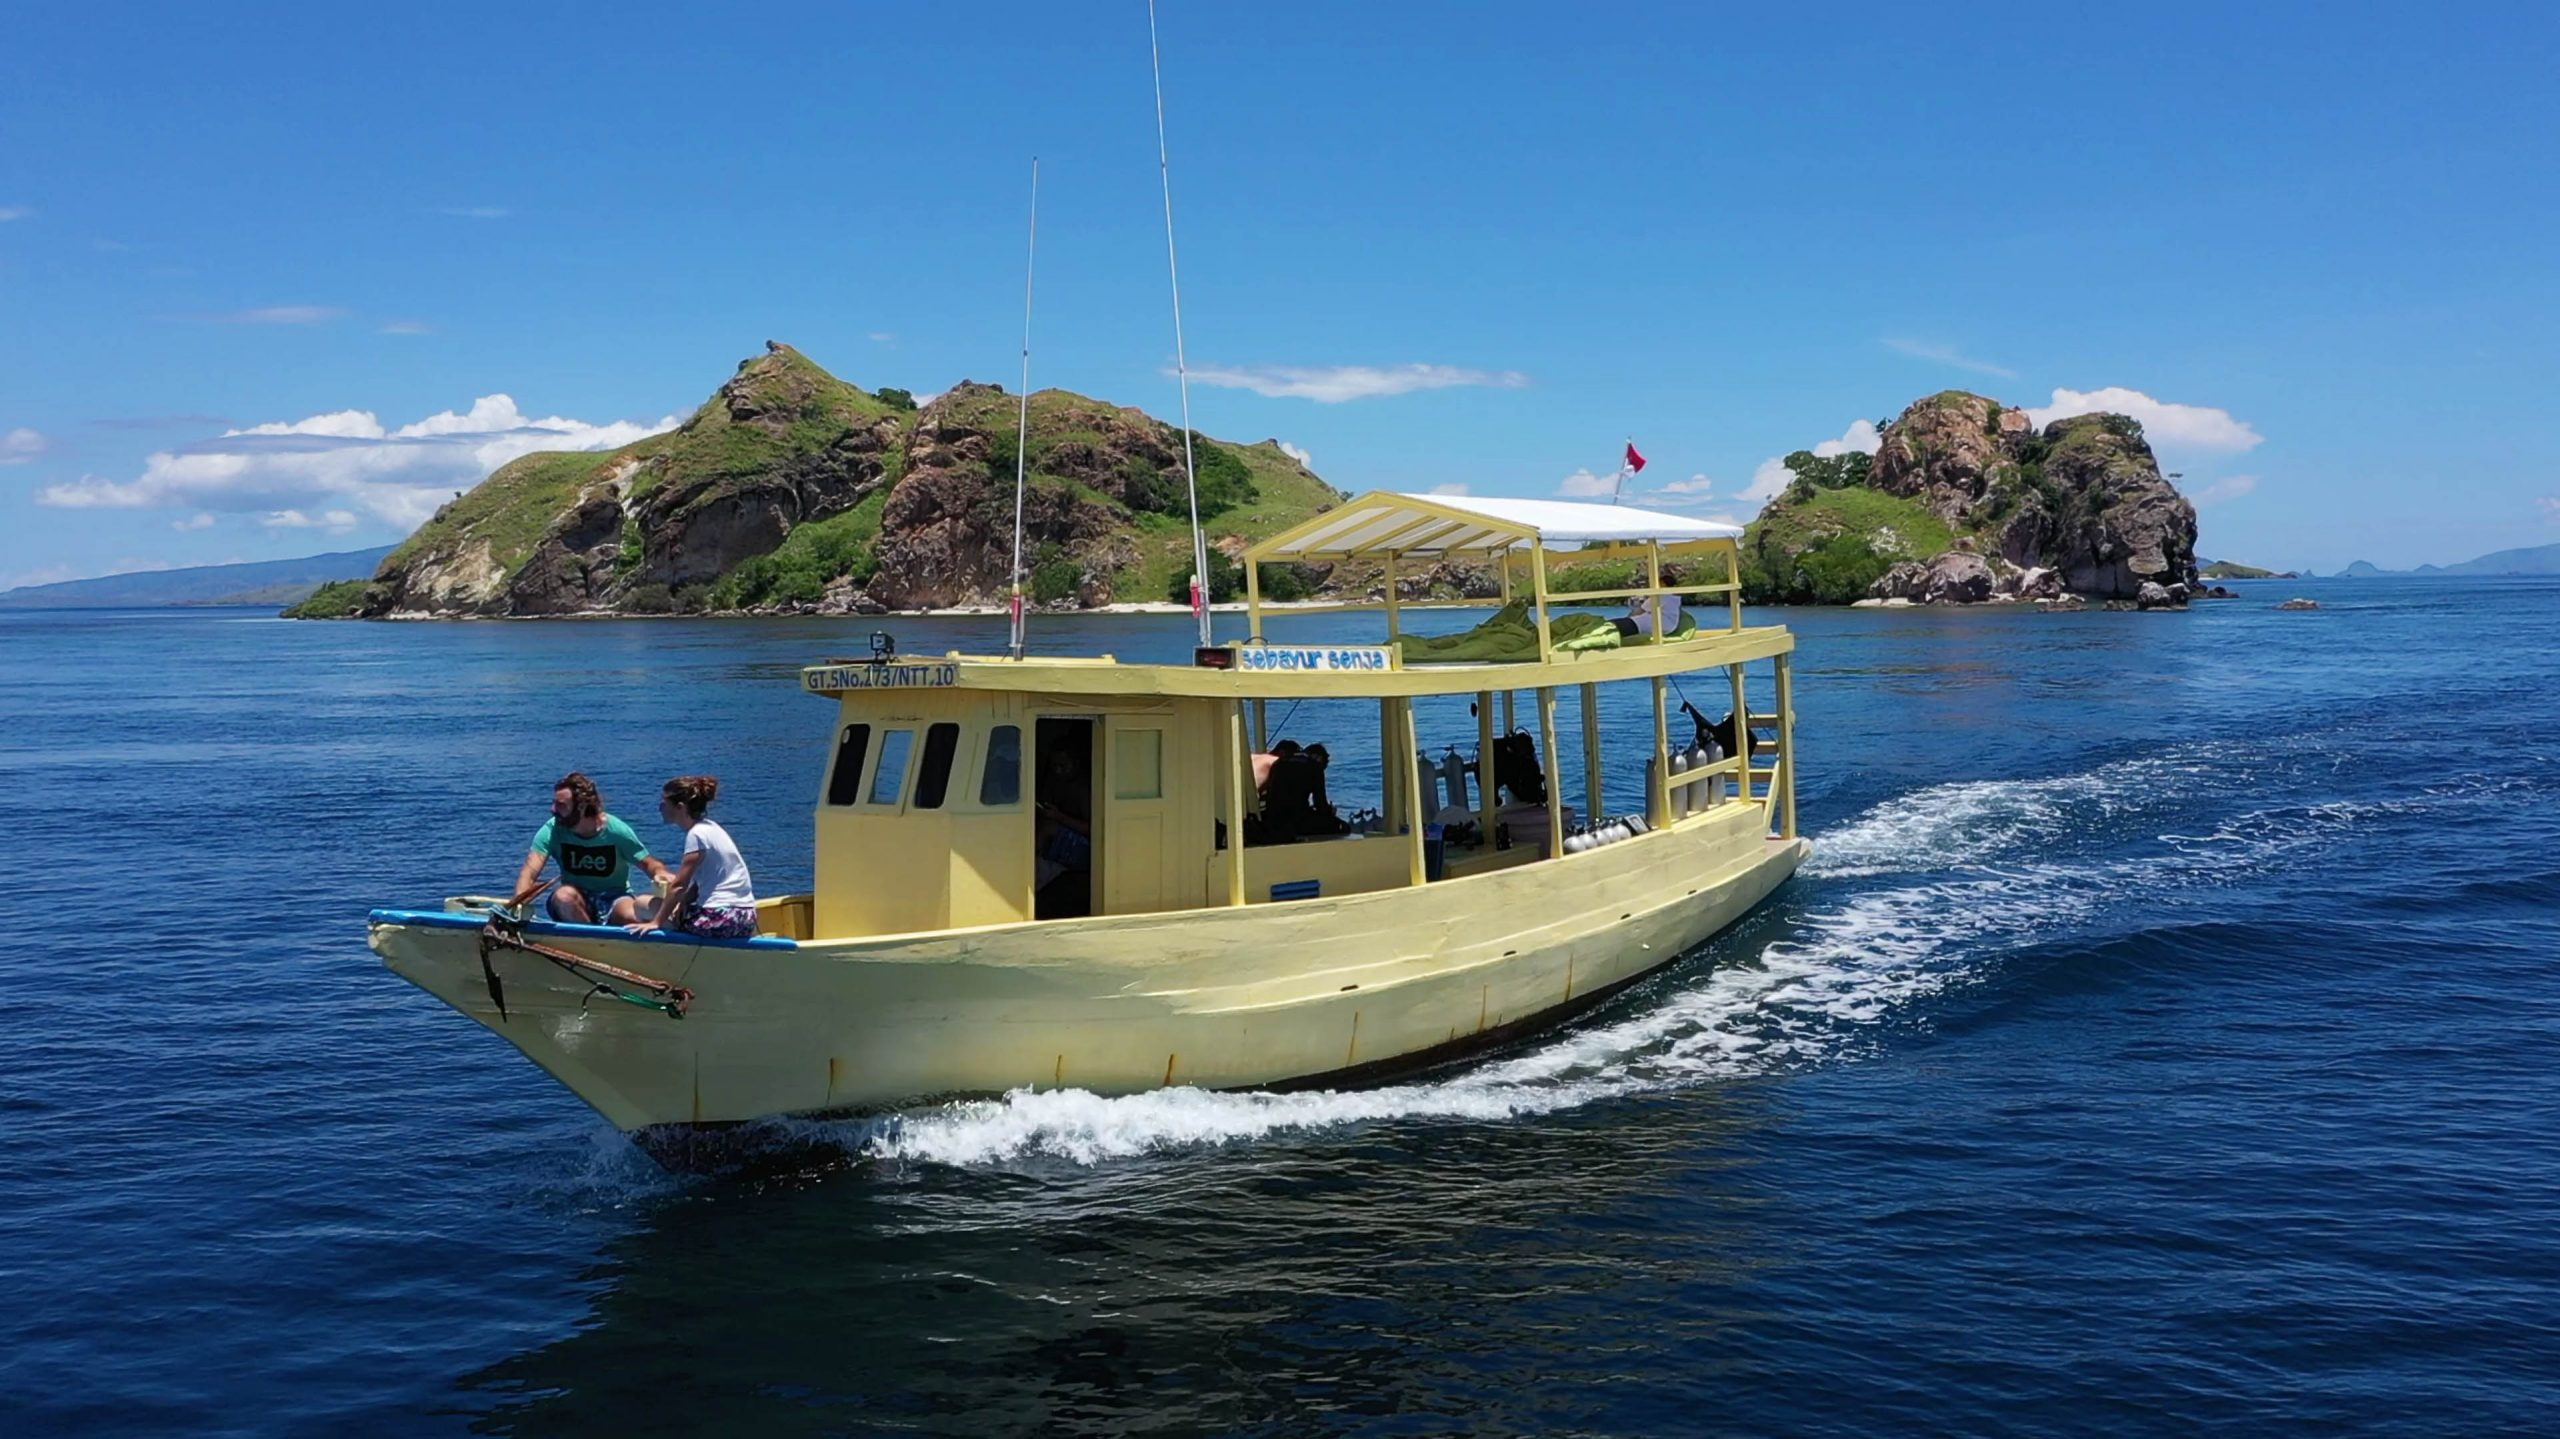 Komodo Resort Dive boat with guests on the bow